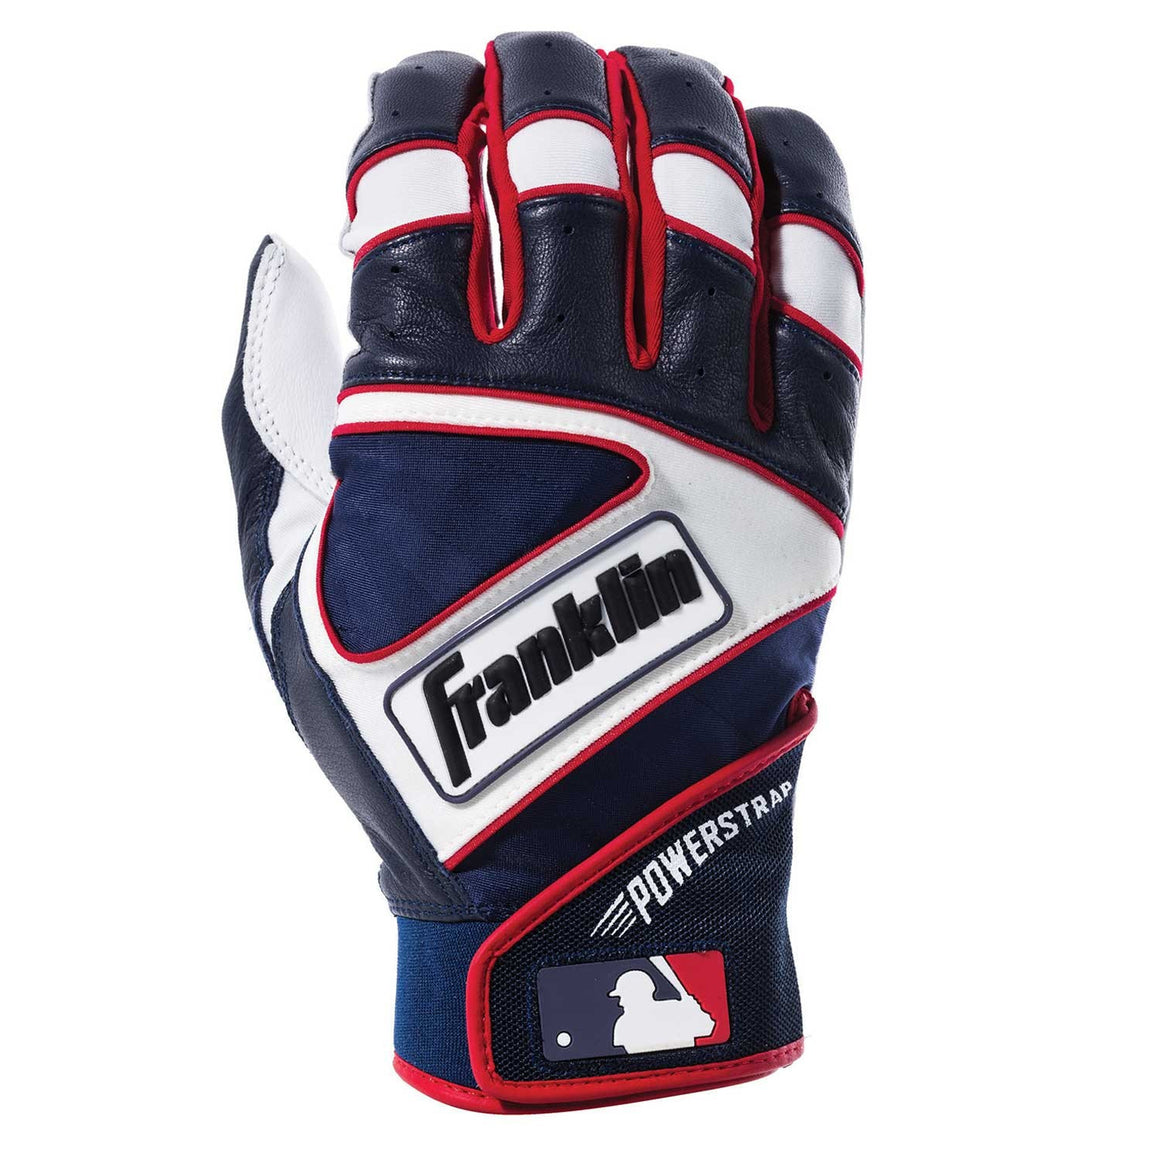 Franklin MLB Powerstrap Youth Batting Gloves, Pearl/Navy/Red, Size Medium